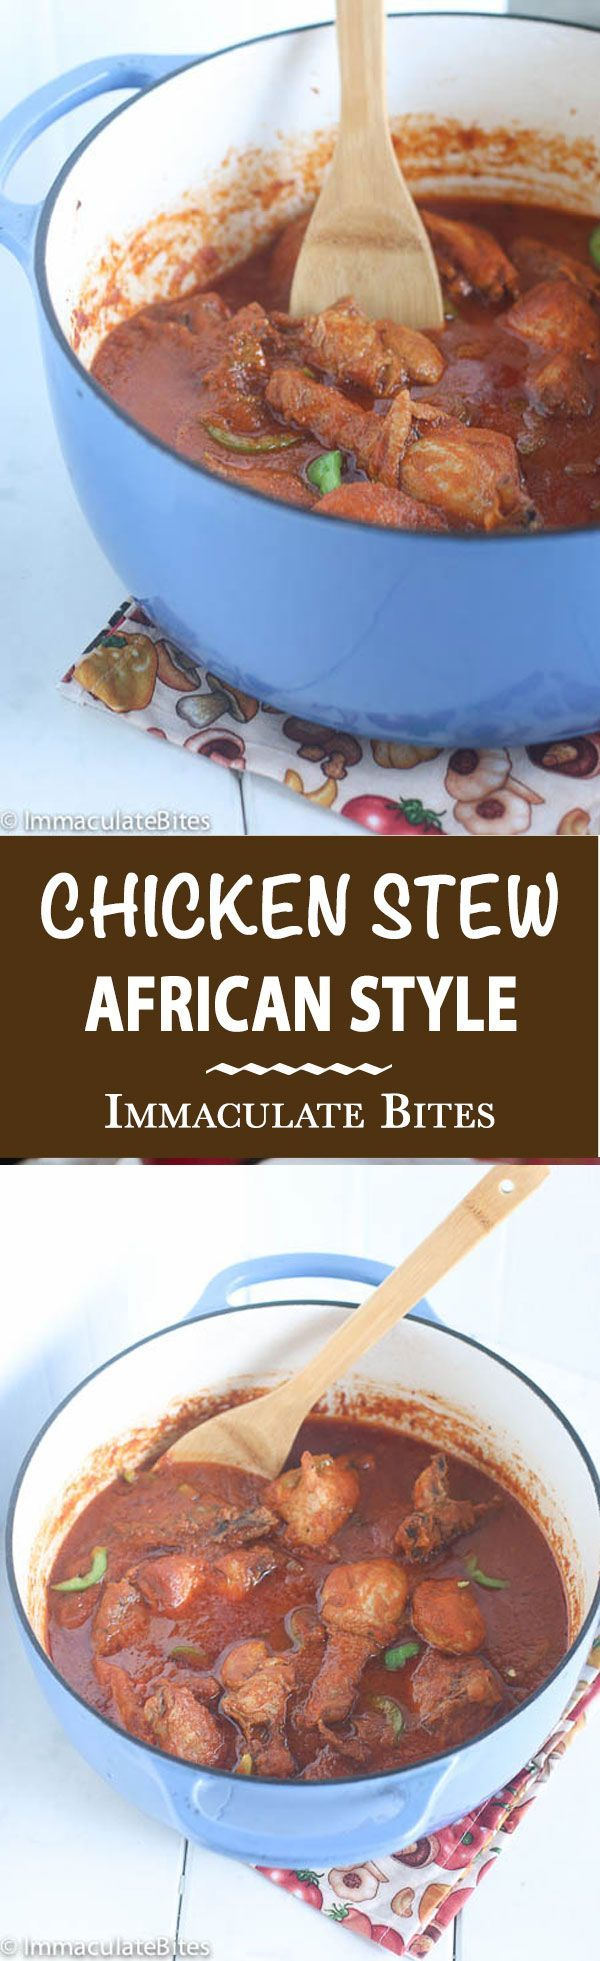 290 best west african recipes images on pinterest african chicken stew african countriesafrican food recipeswest forumfinder Gallery